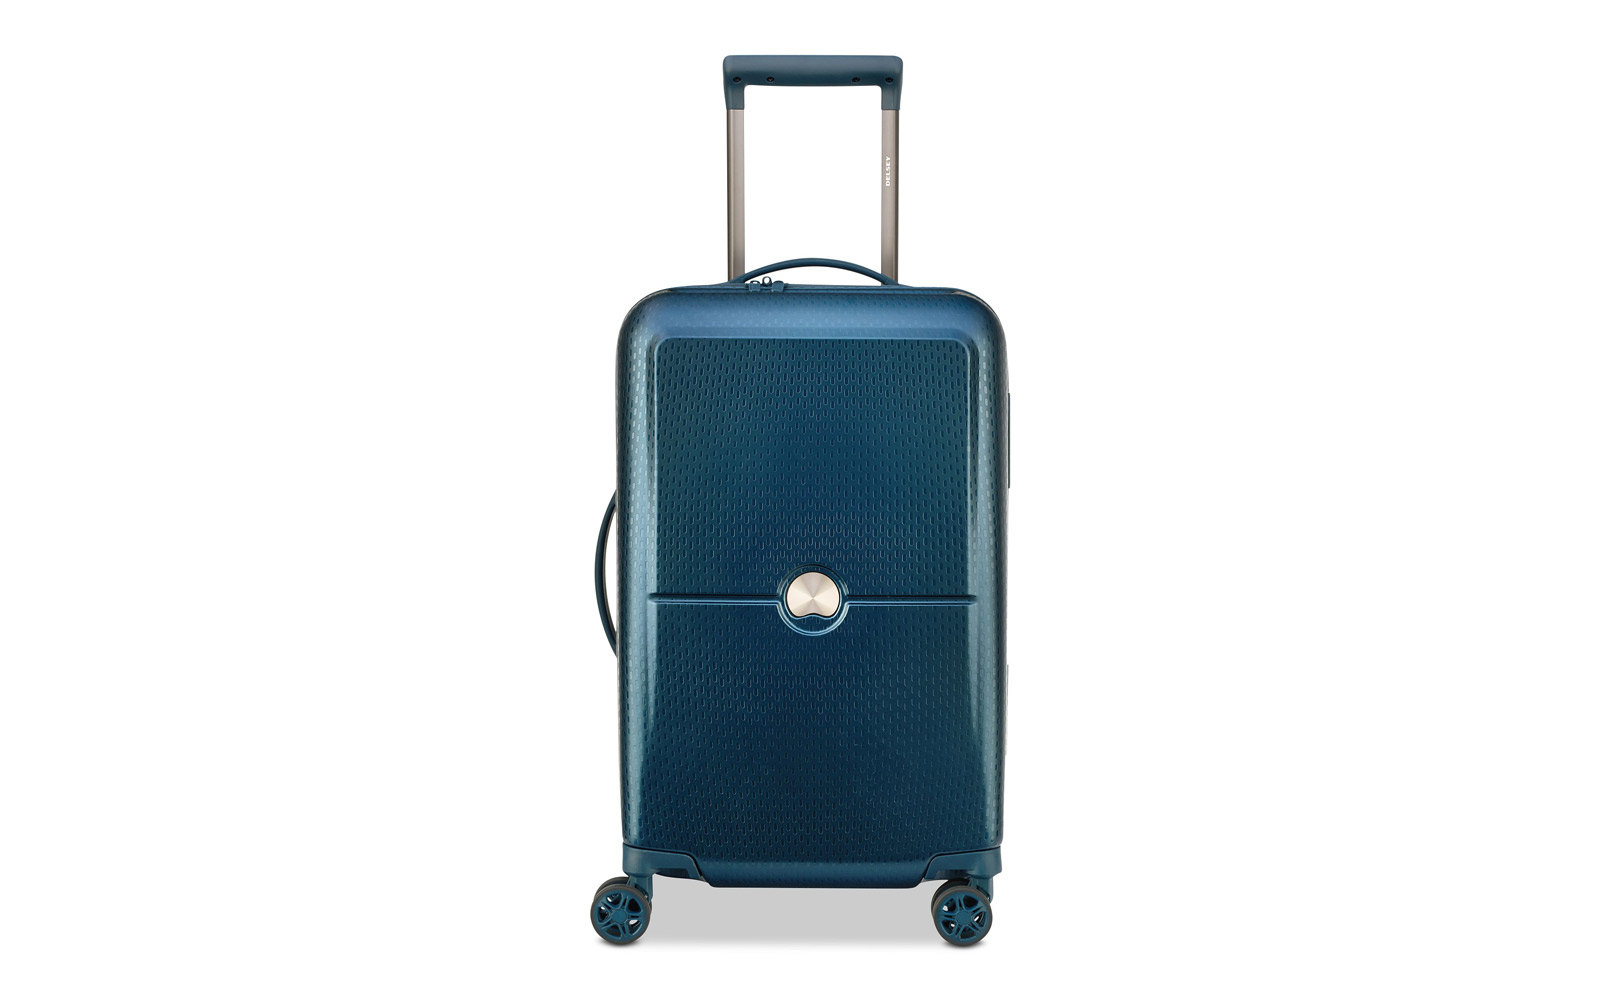 Best Lightweight Carry On Delsey Turenne International Hardside Spinner Suitcase